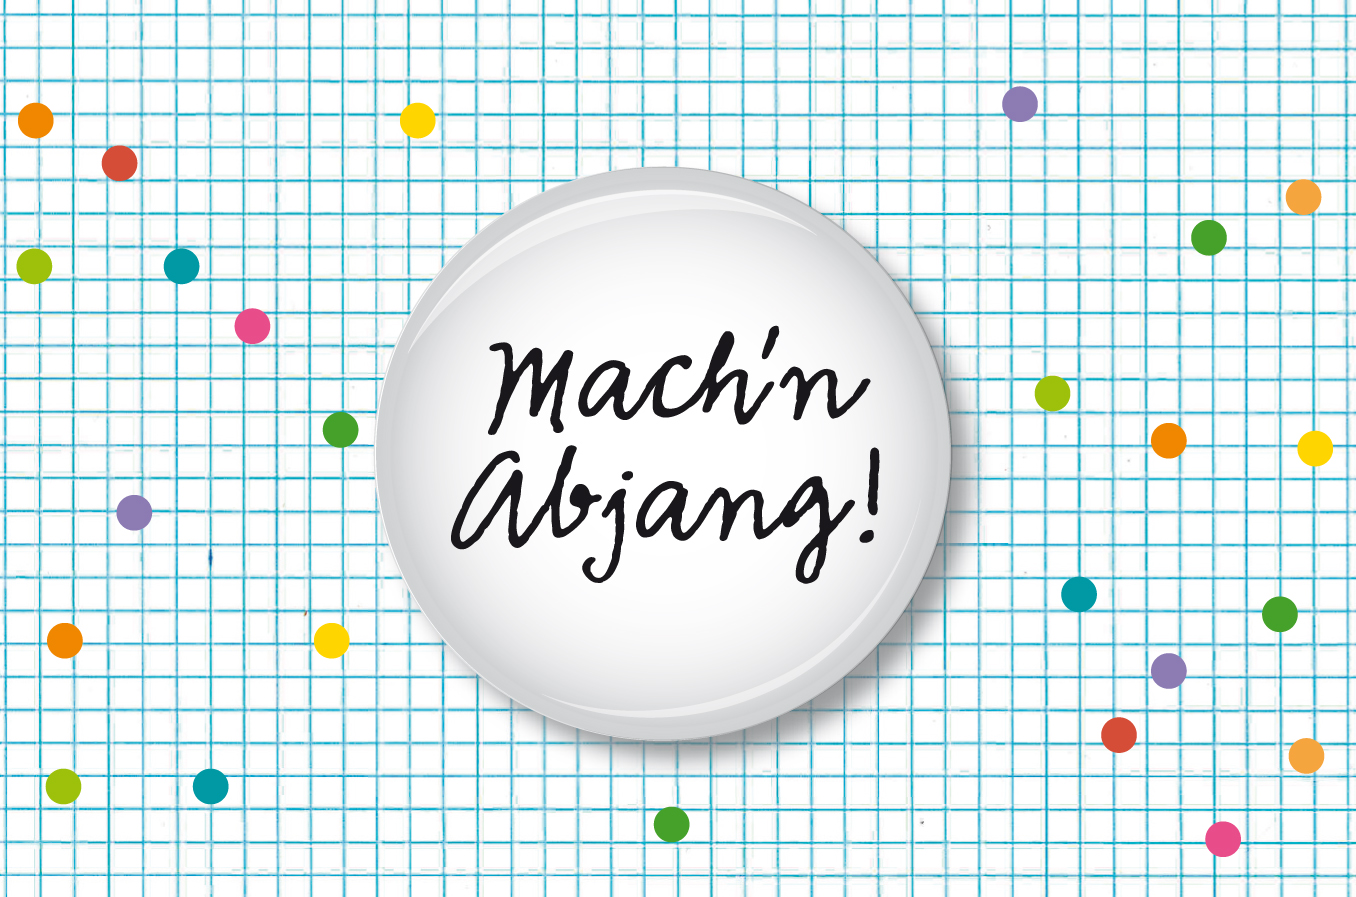 Button Mach n Abjang - 1